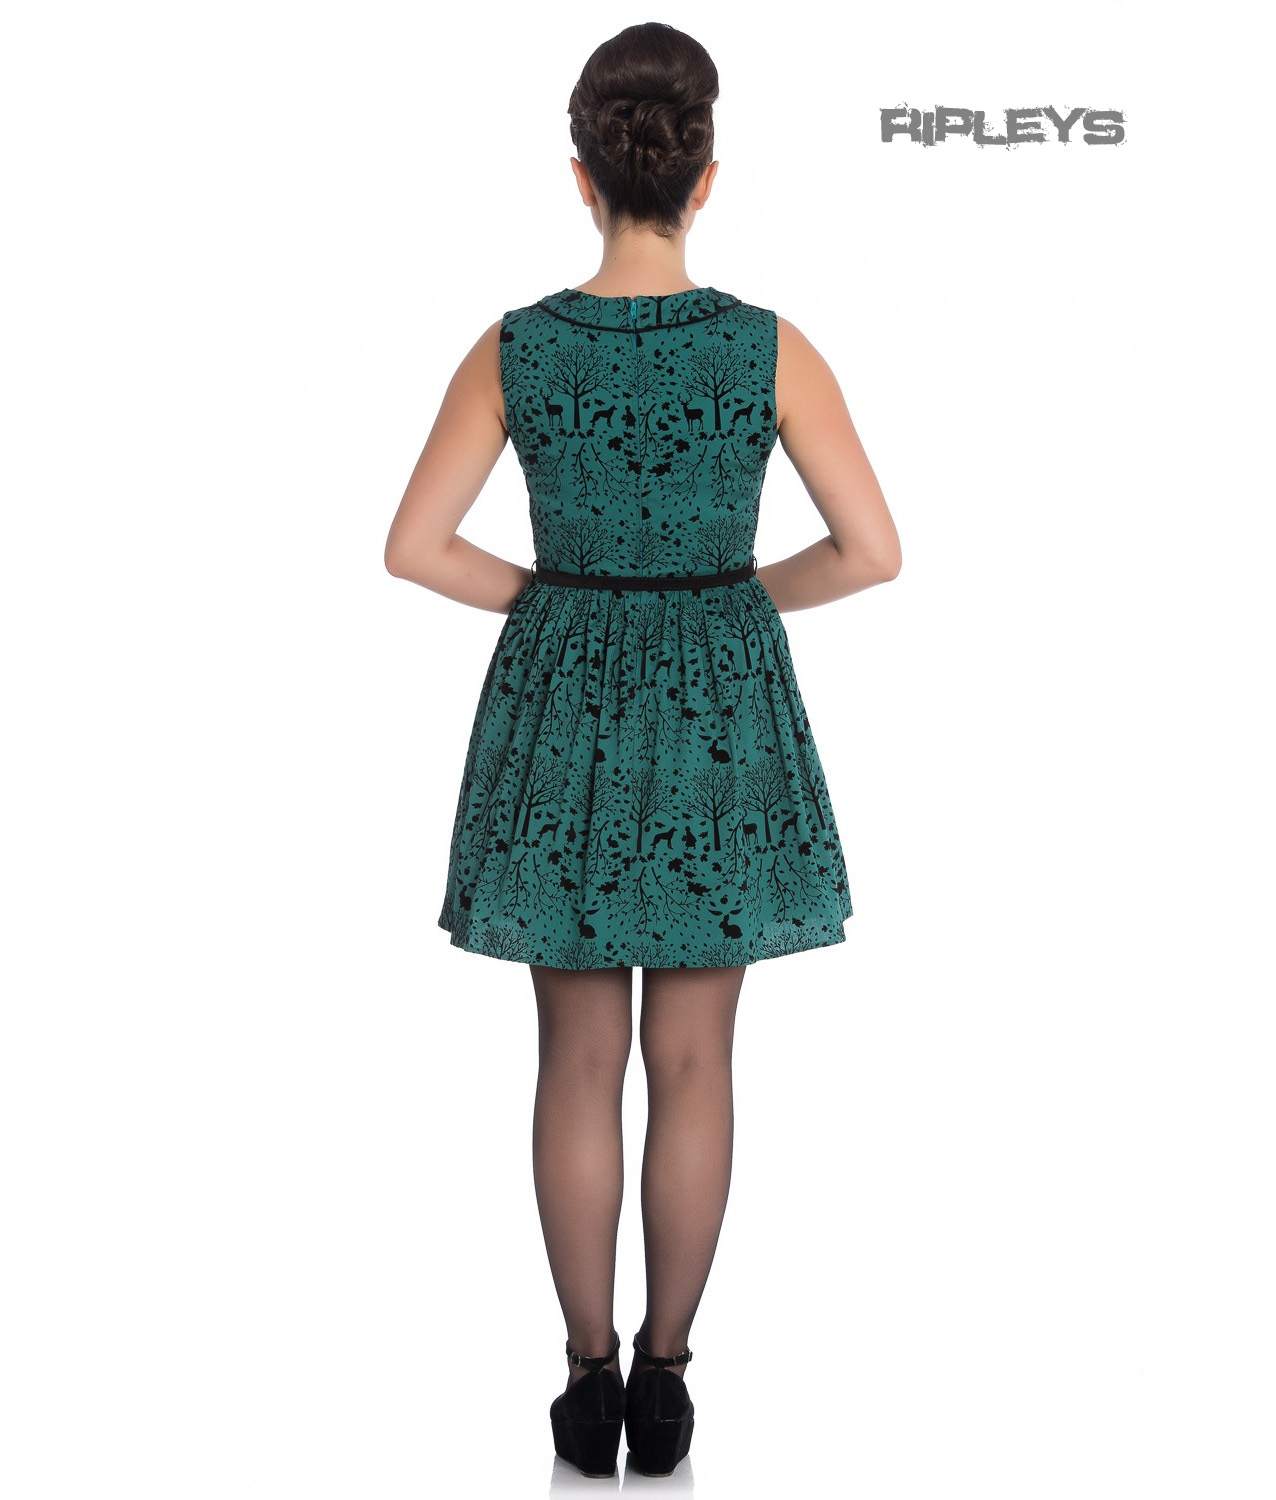 Hell-Bunny-50s-Mini-Skater-Dress-Woodland-Trees-SHERWOOD-Dark-Green-All-Sizes thumbnail 4